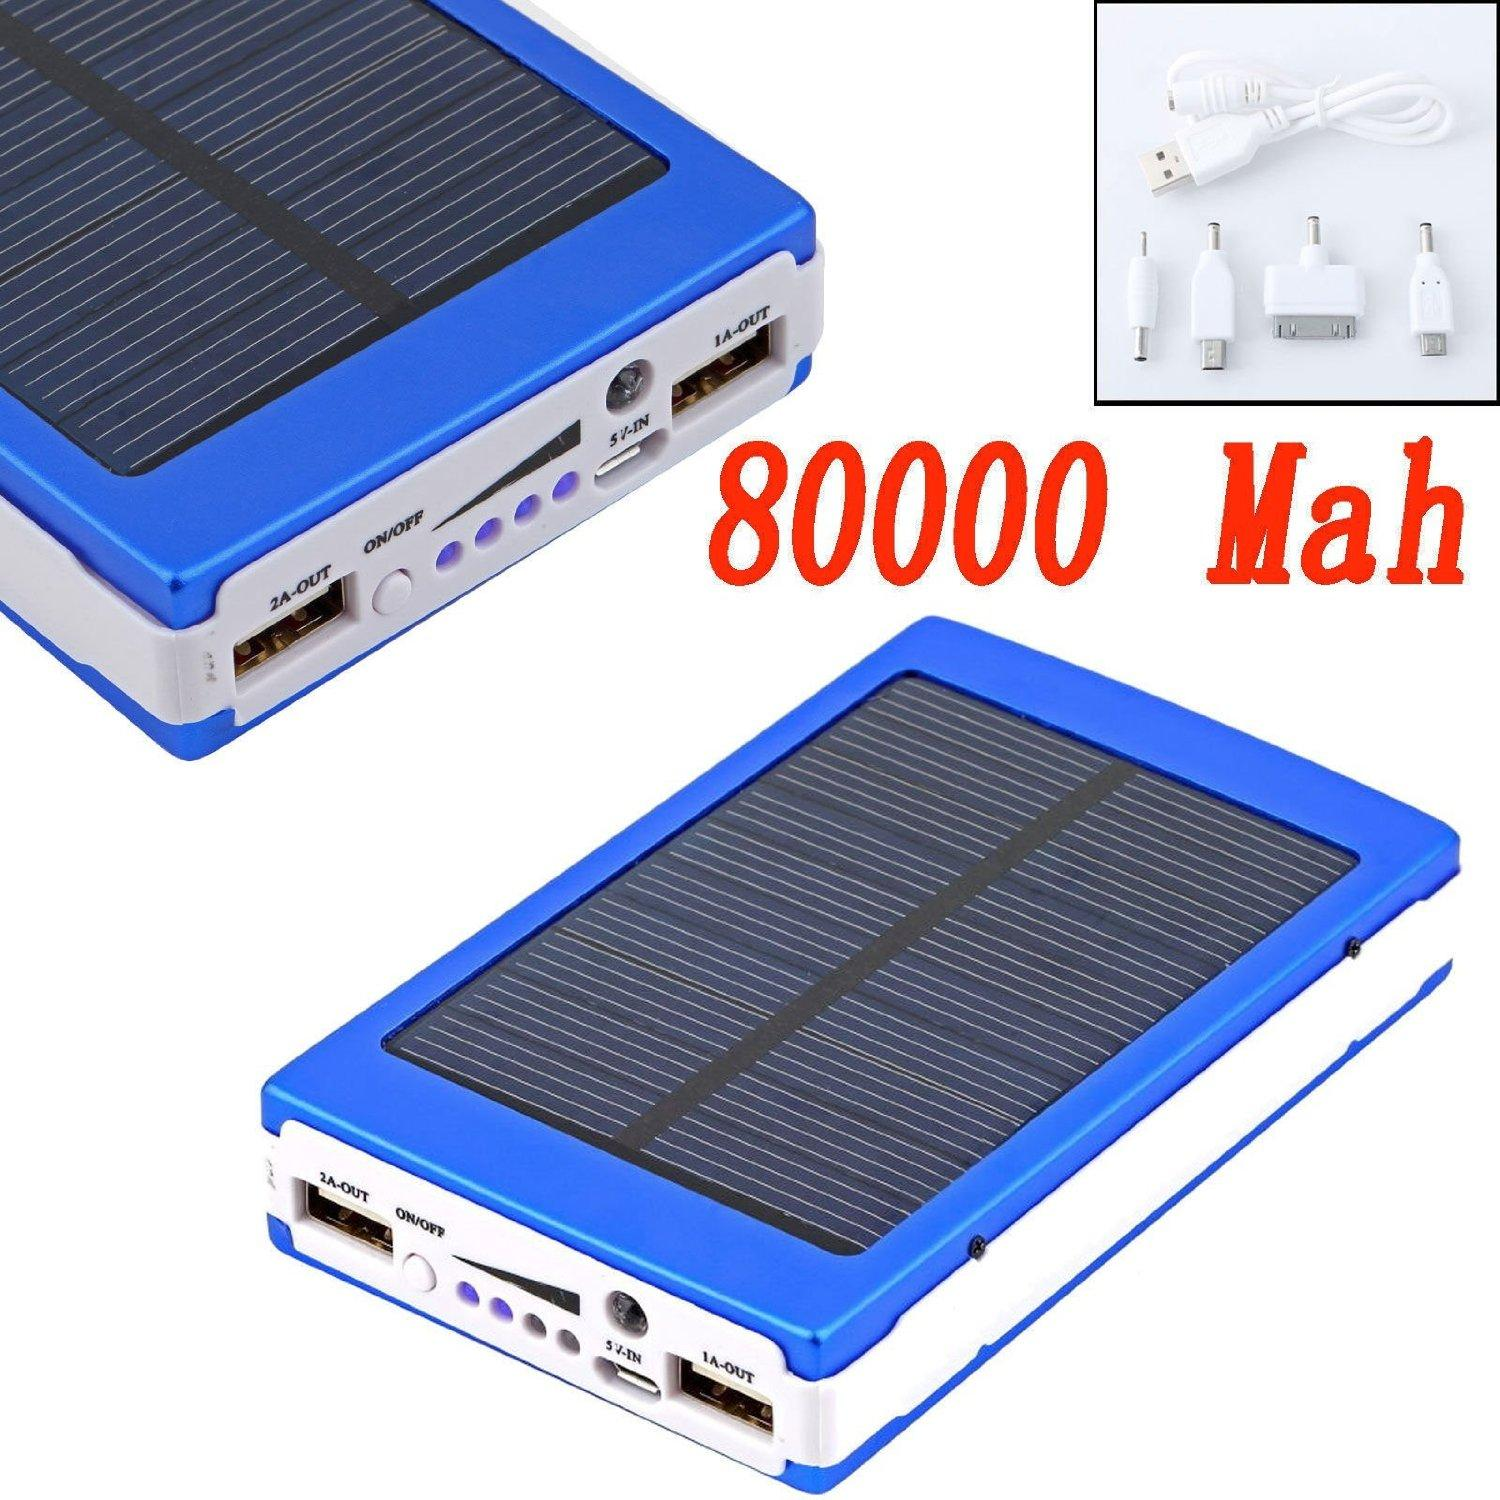 Solar Panel Battery Bank >> 80000mah Dual Usb Portable Solar Battery Charger Power Bank For Cell Phone Blue